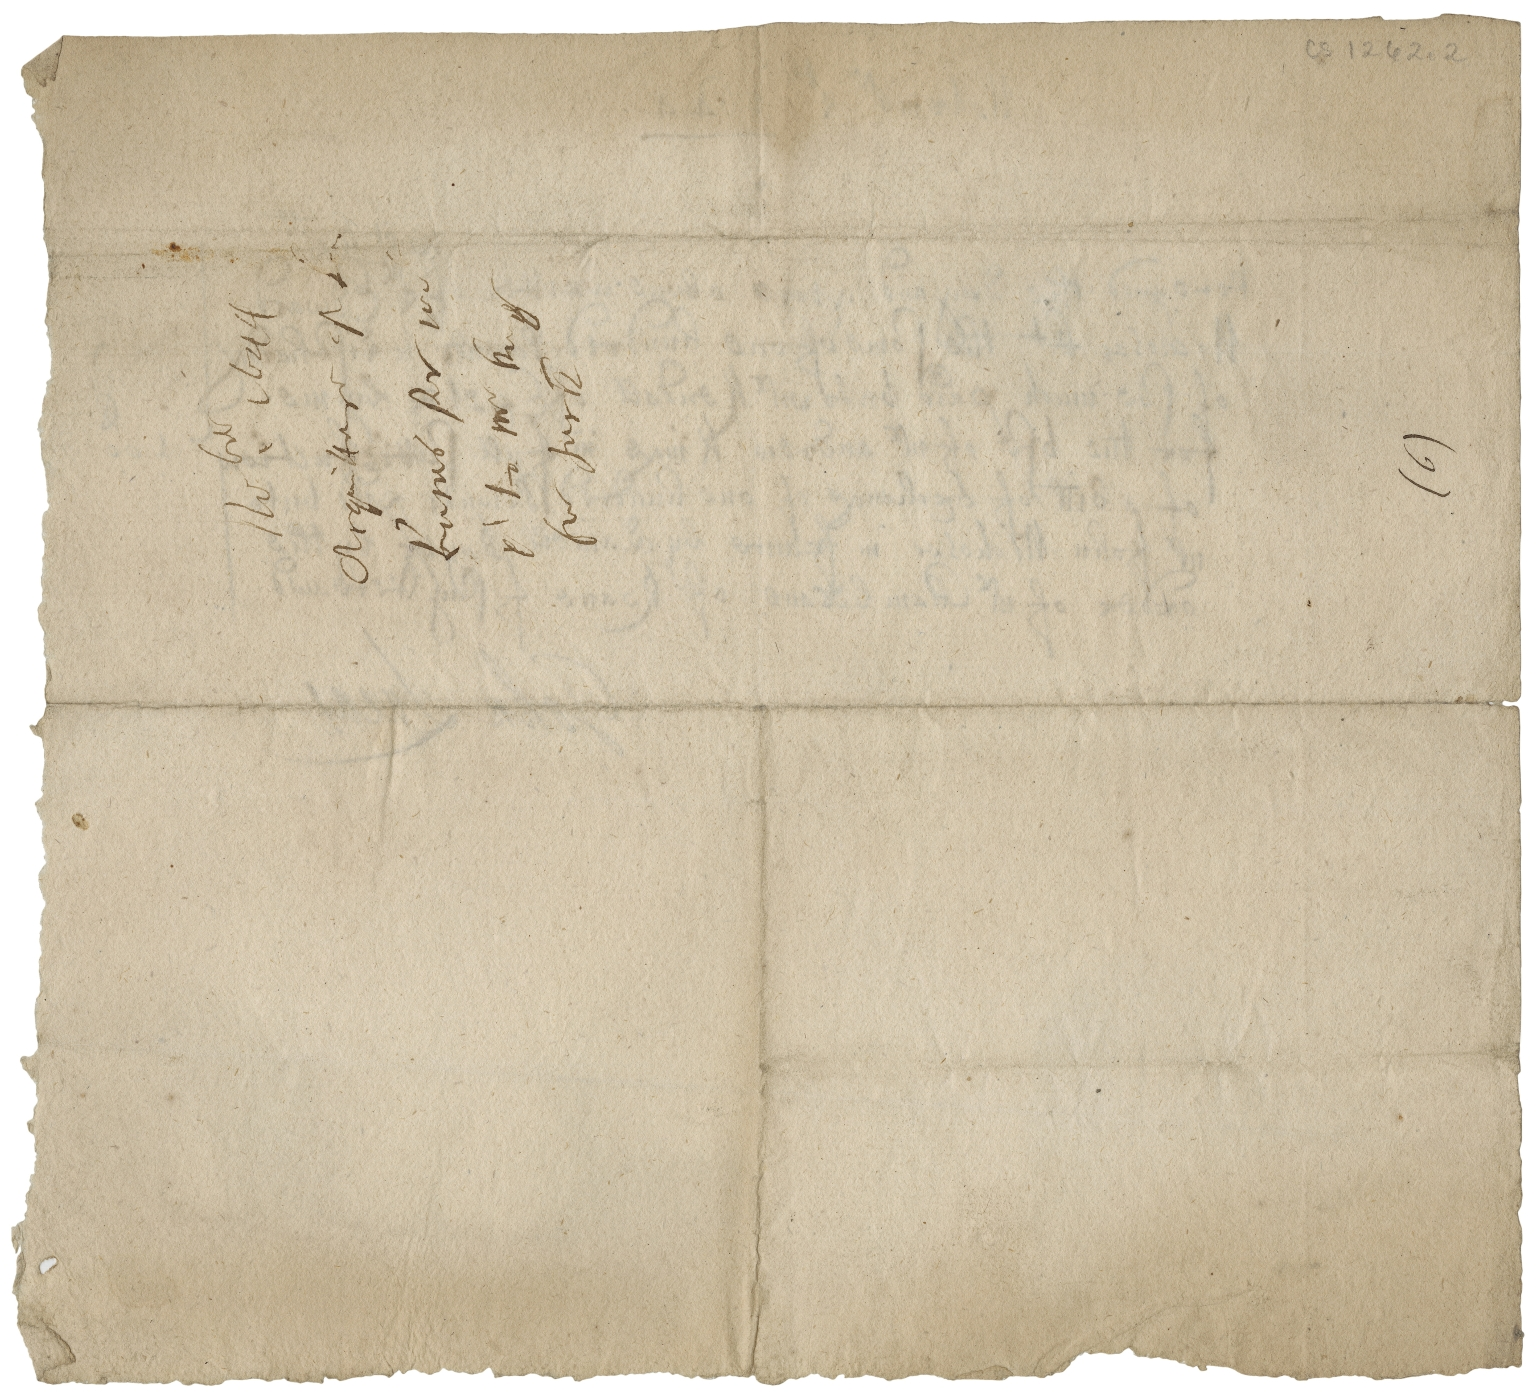 Acquittance from John Lucas to Sir Edward Nicholas